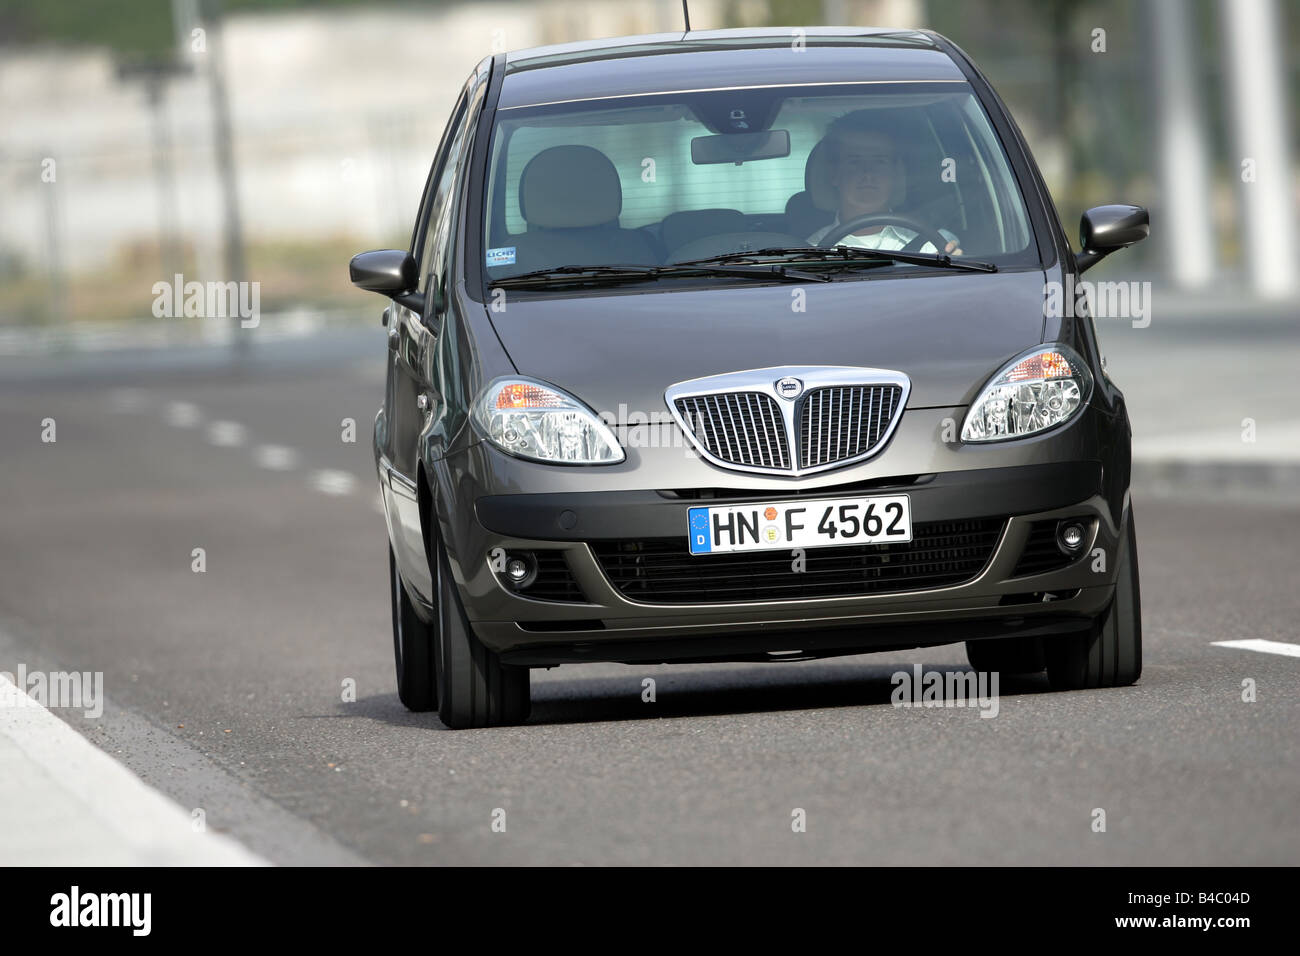 https://c8.alamy.com/comp/B4C04D/car-lancia-musa-multijet-10-jtd-van-model-year-2004-driving-diagonal-B4C04D.jpg